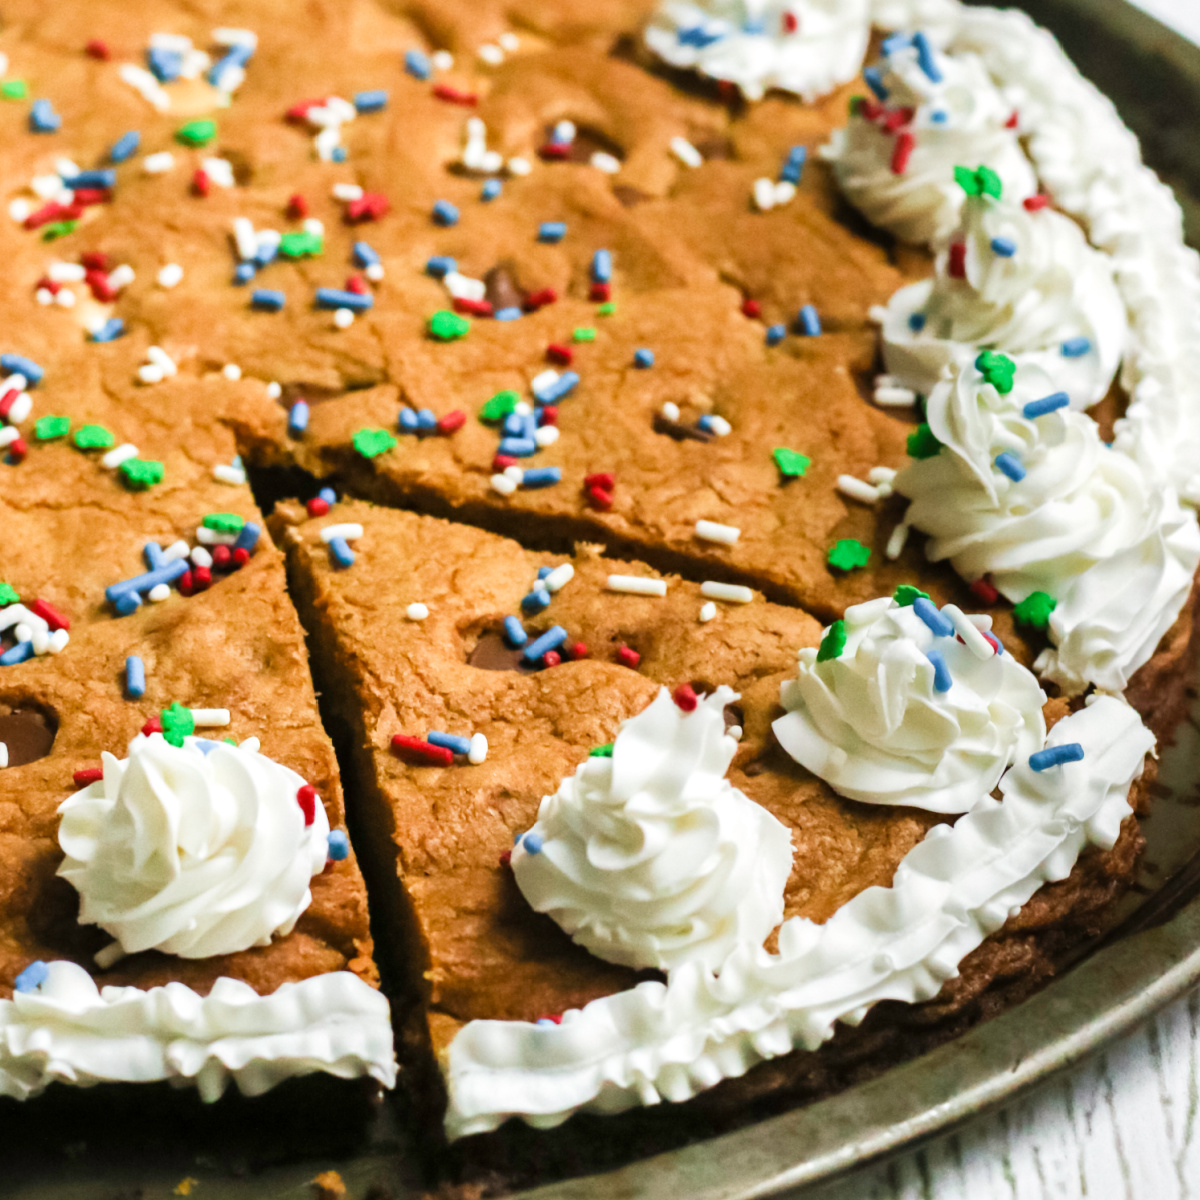 chocolate chip cookie cake on a pan with a slice cut and ready to serve.